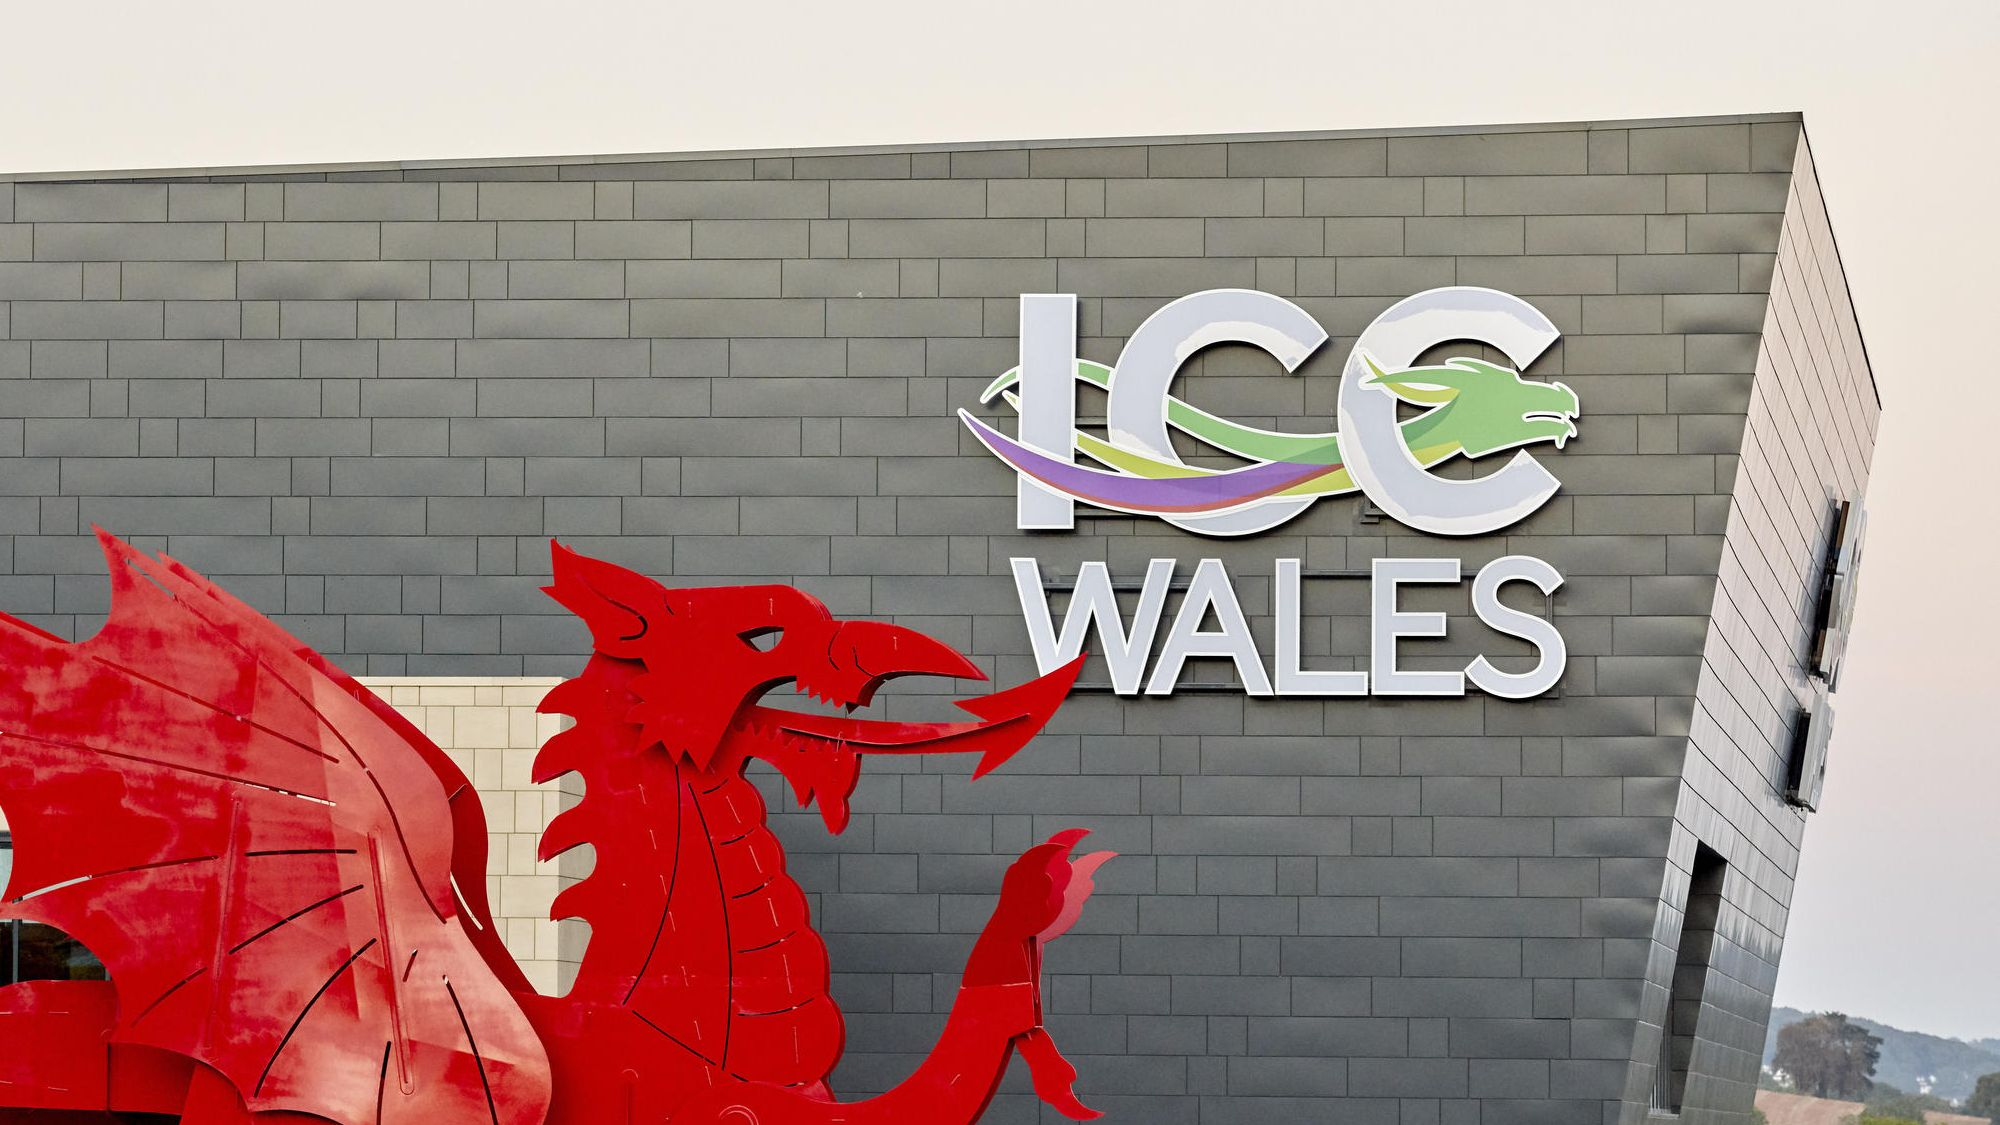 From 26 February on, ICC Wales Live will feature live-streamed masterclasses.